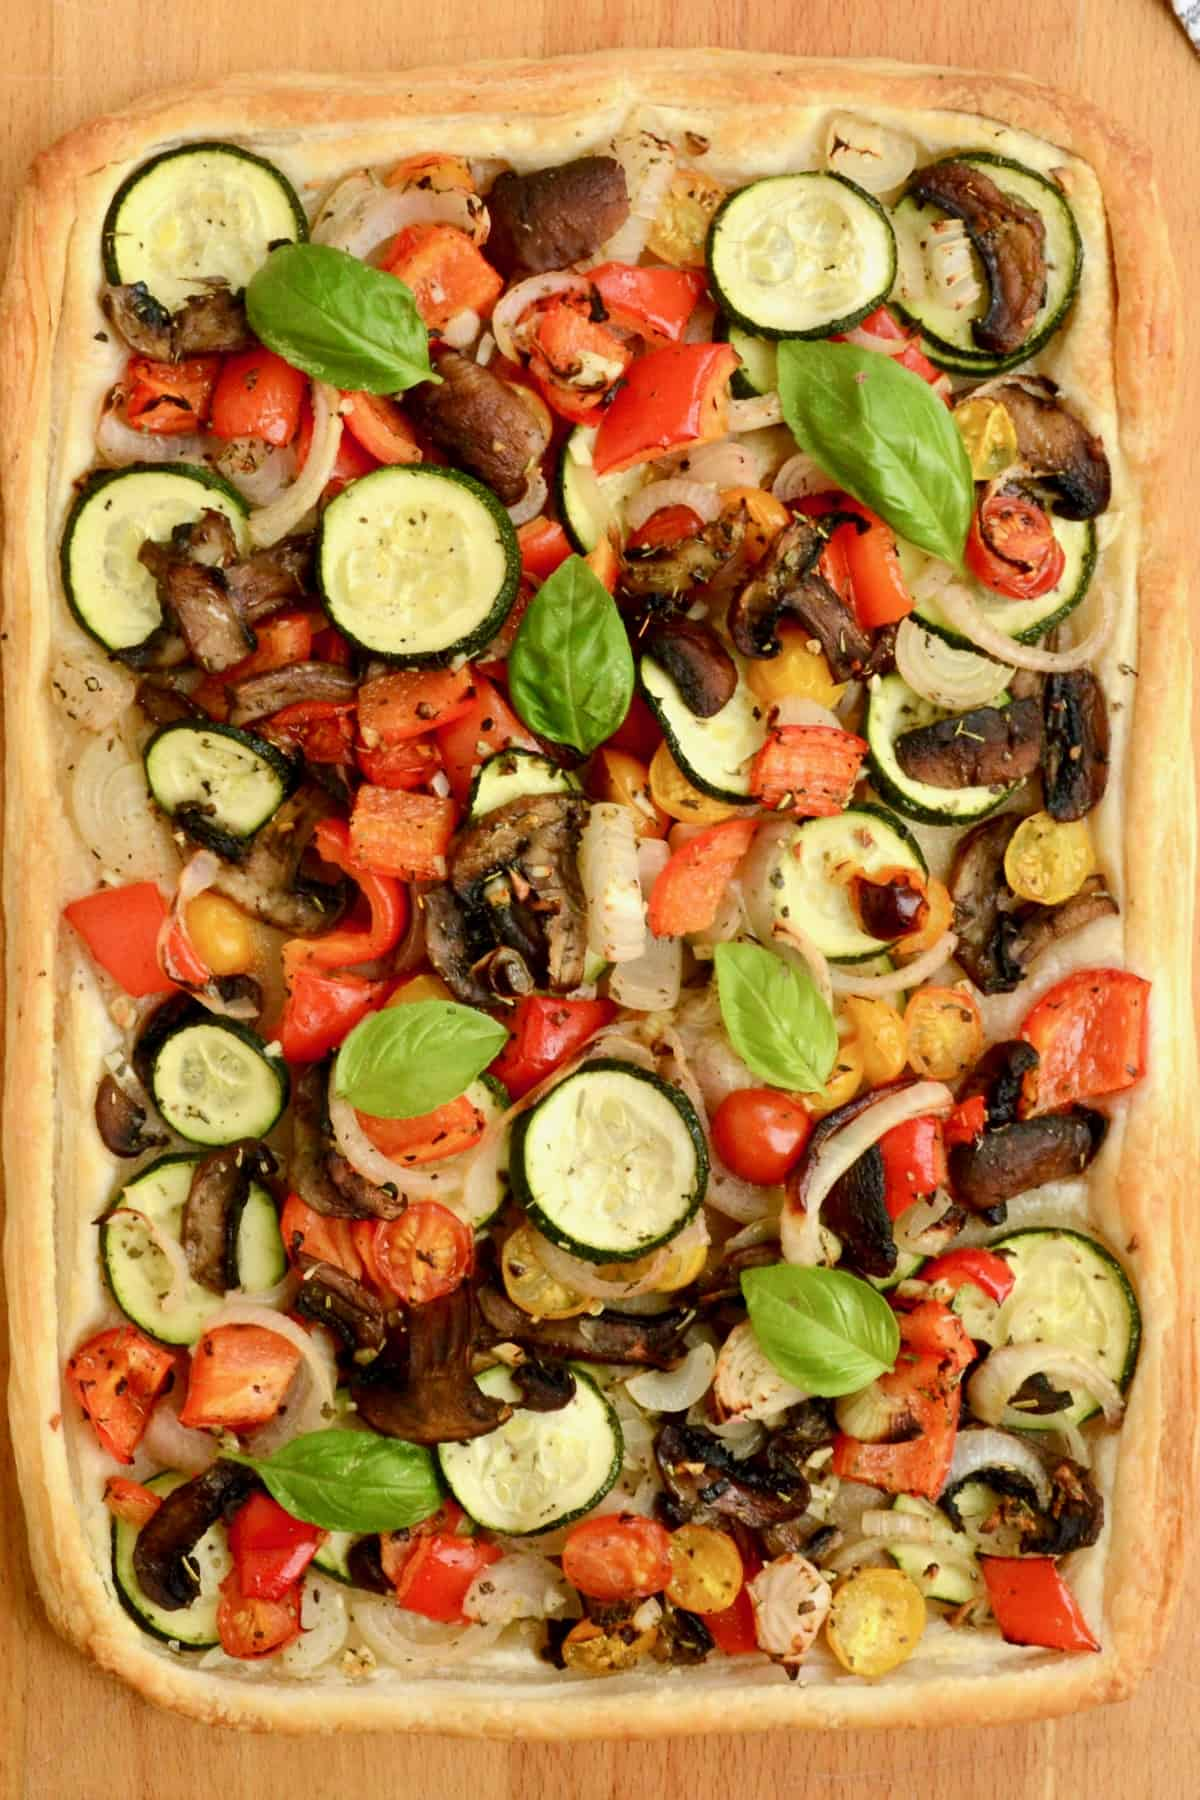 The cooked vegetable tart with colourful veggies and basil on top.